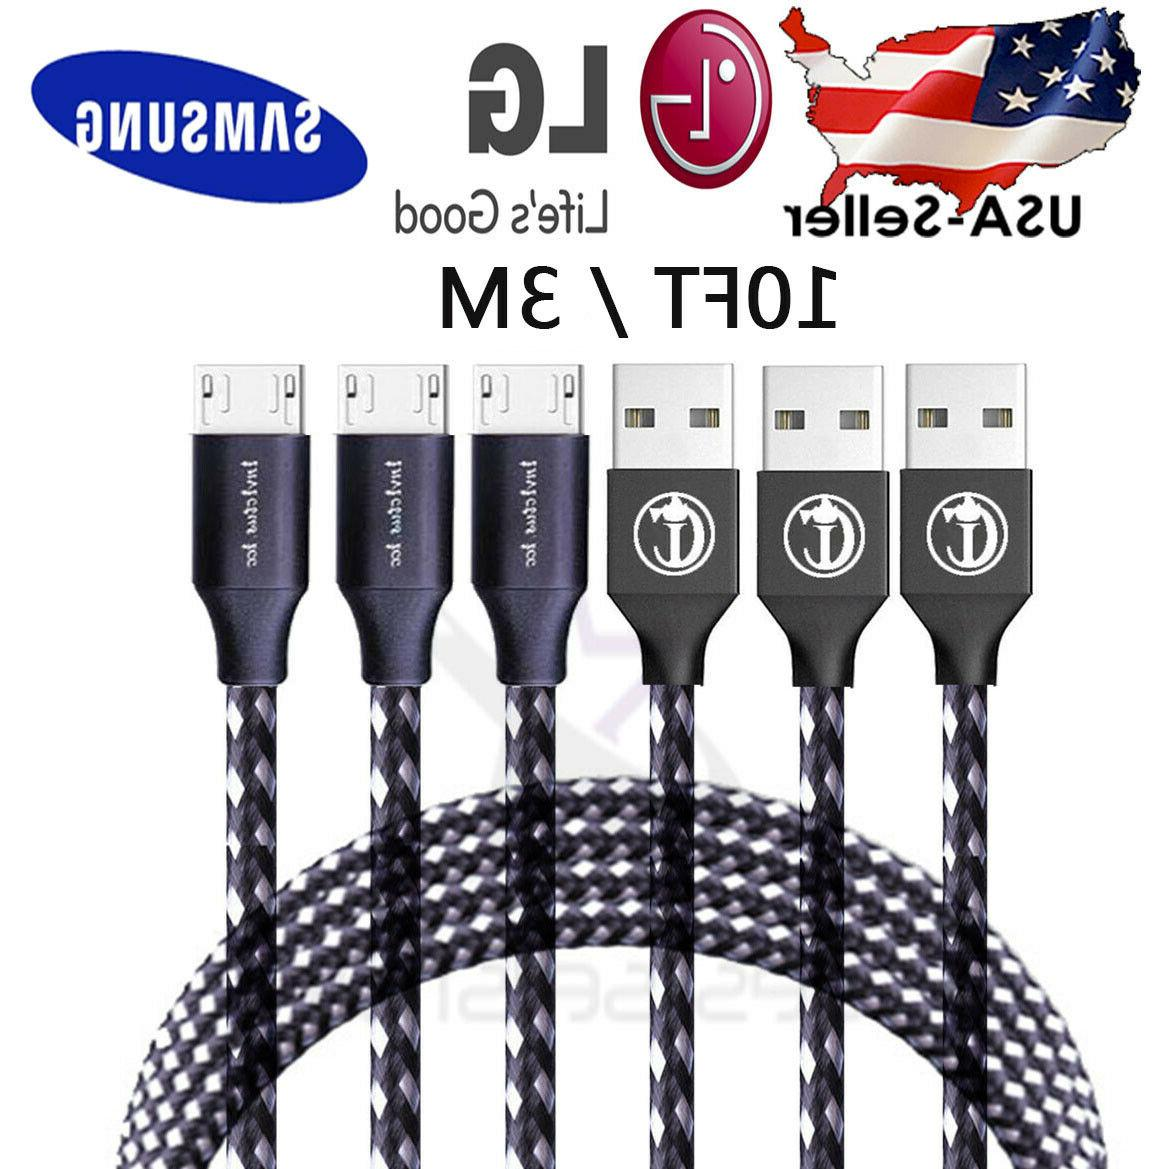 10ft micro usb 3 0 fast charger